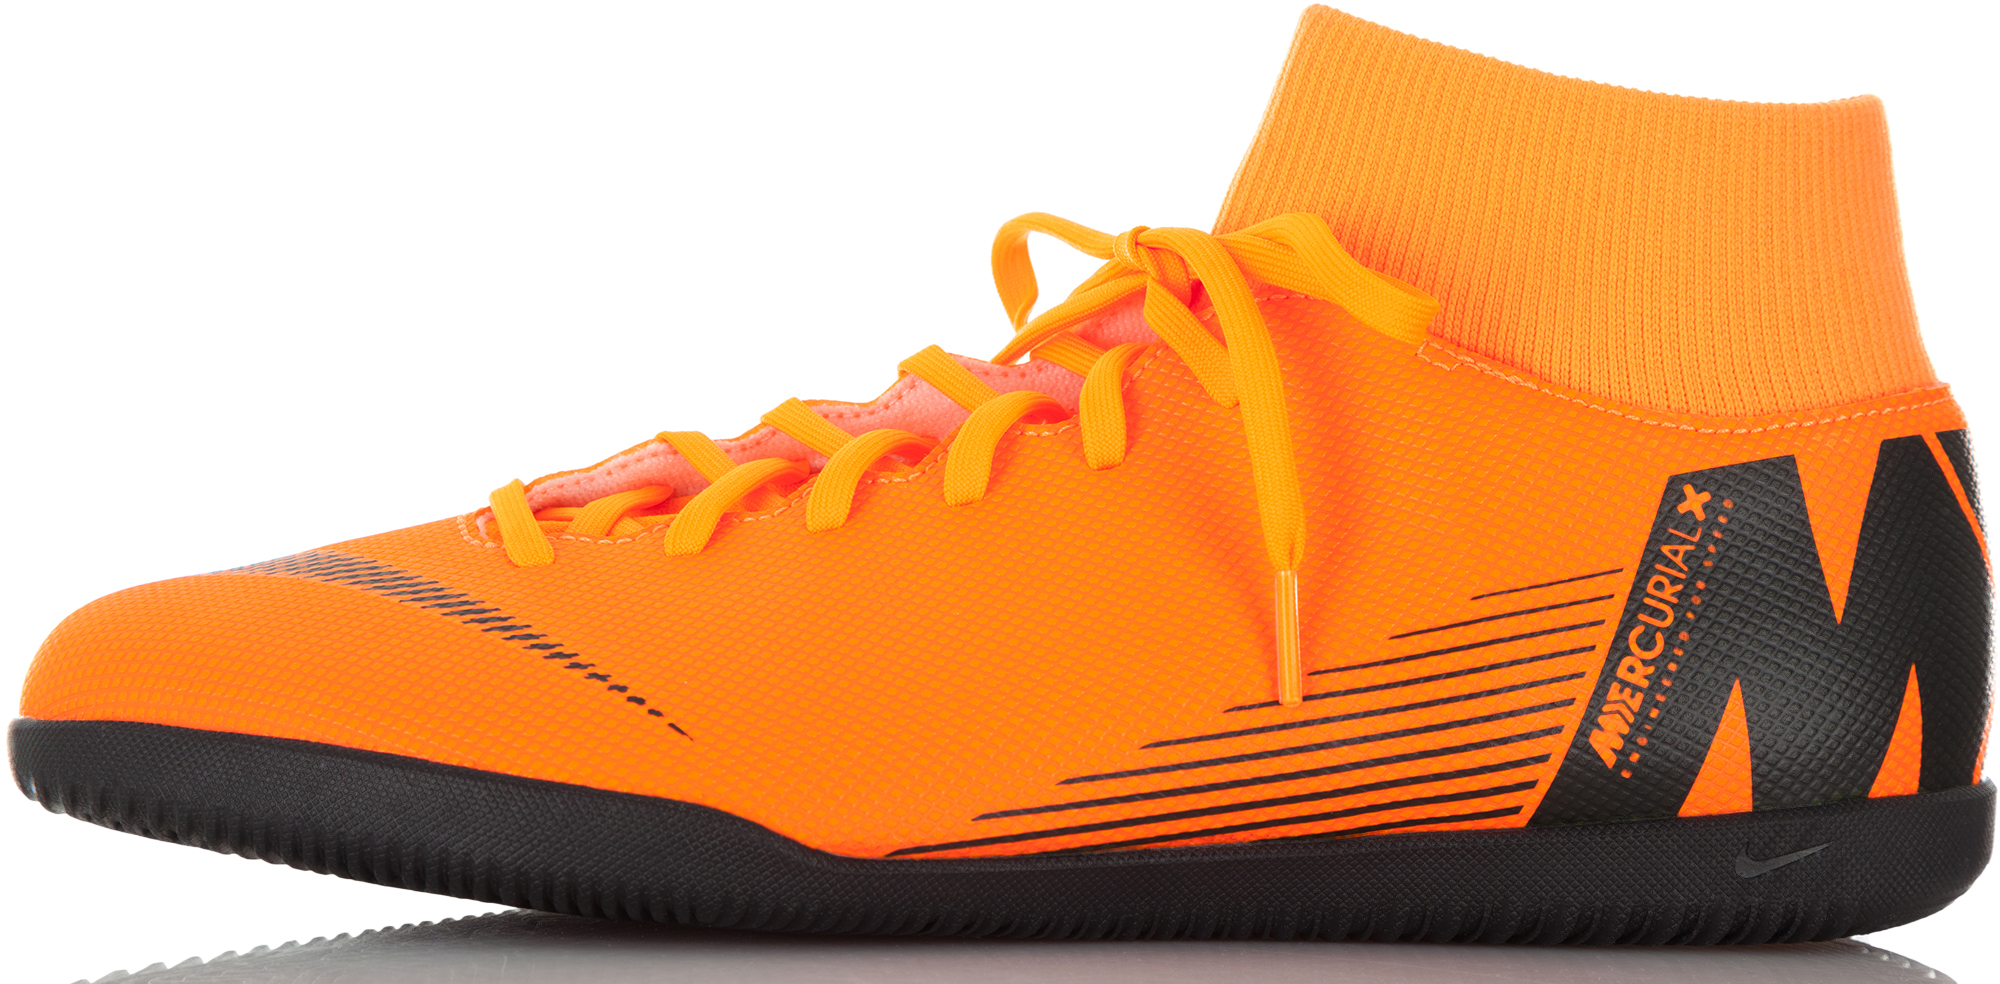 Nike Бутсы мужские Nike Superflyx 6 Club IC бутсы nike бутсы jr mercurialx vapor xi ic